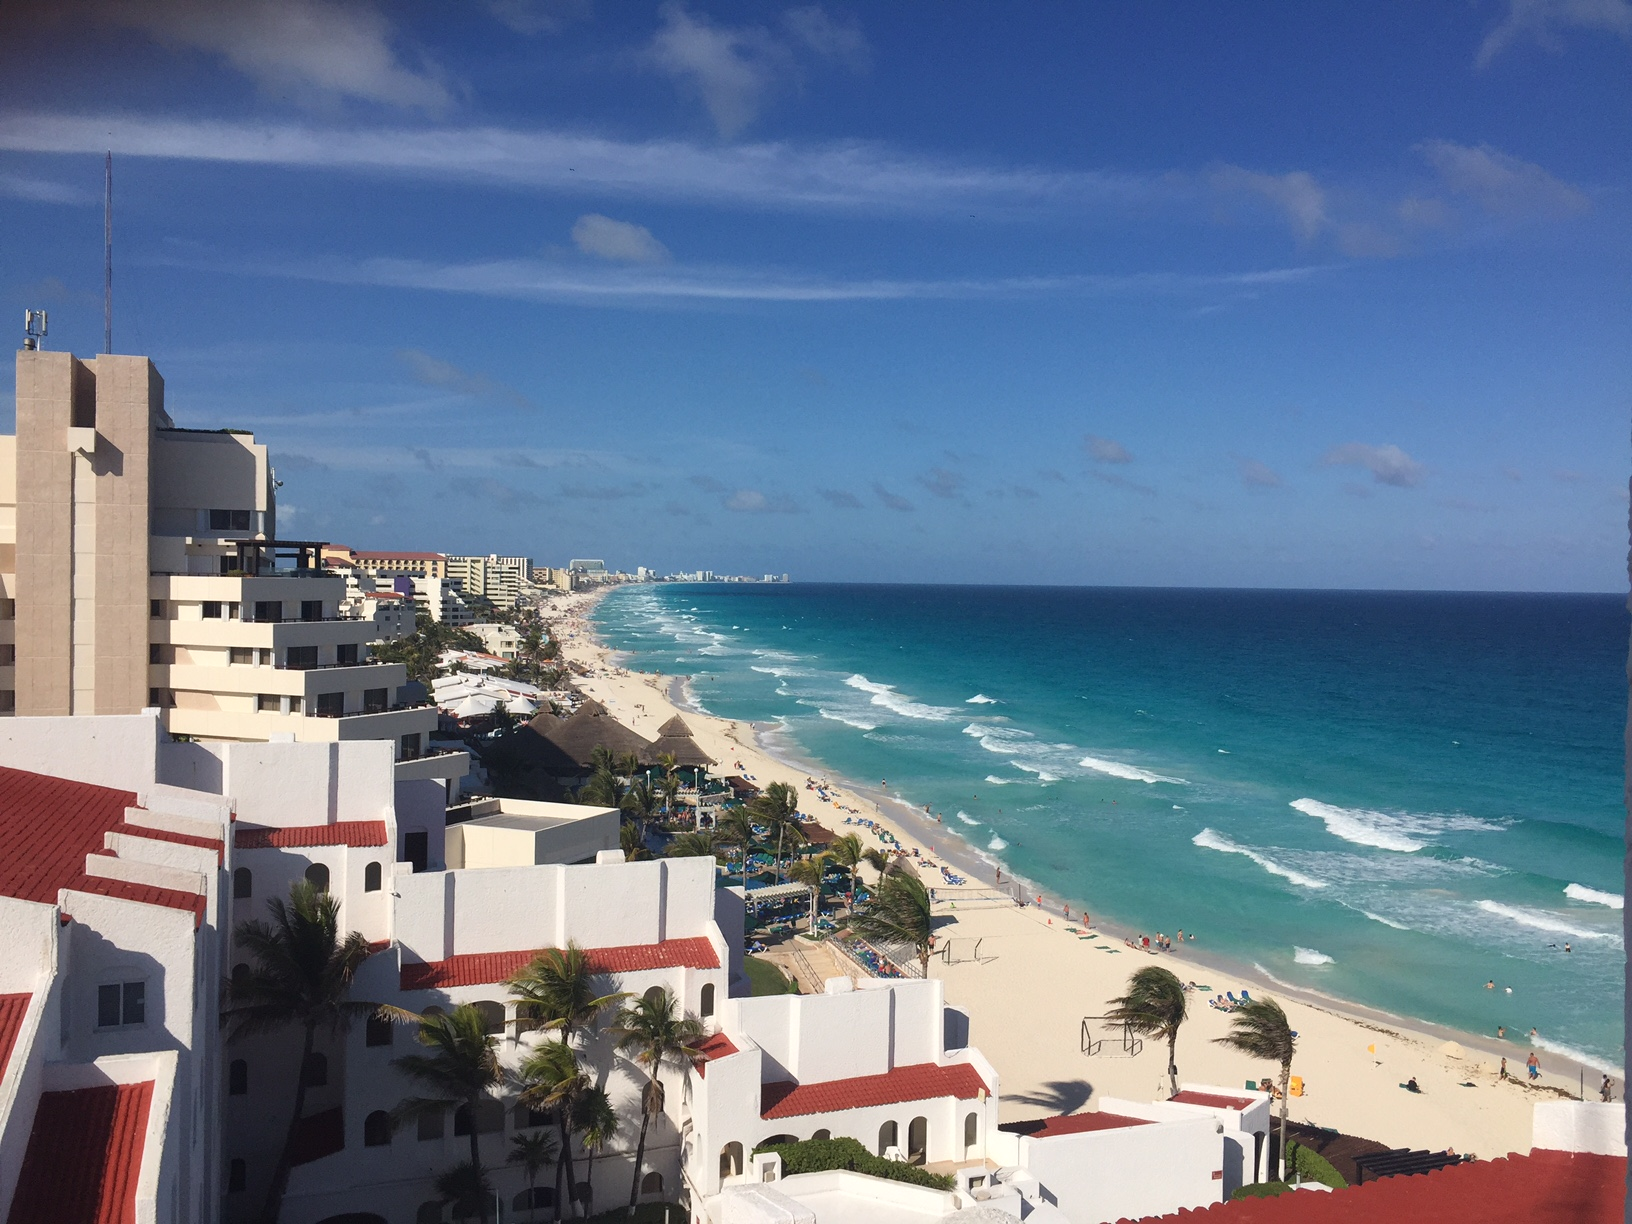 A photo of the beach along the Hotel Zone in Cancun, Mexico